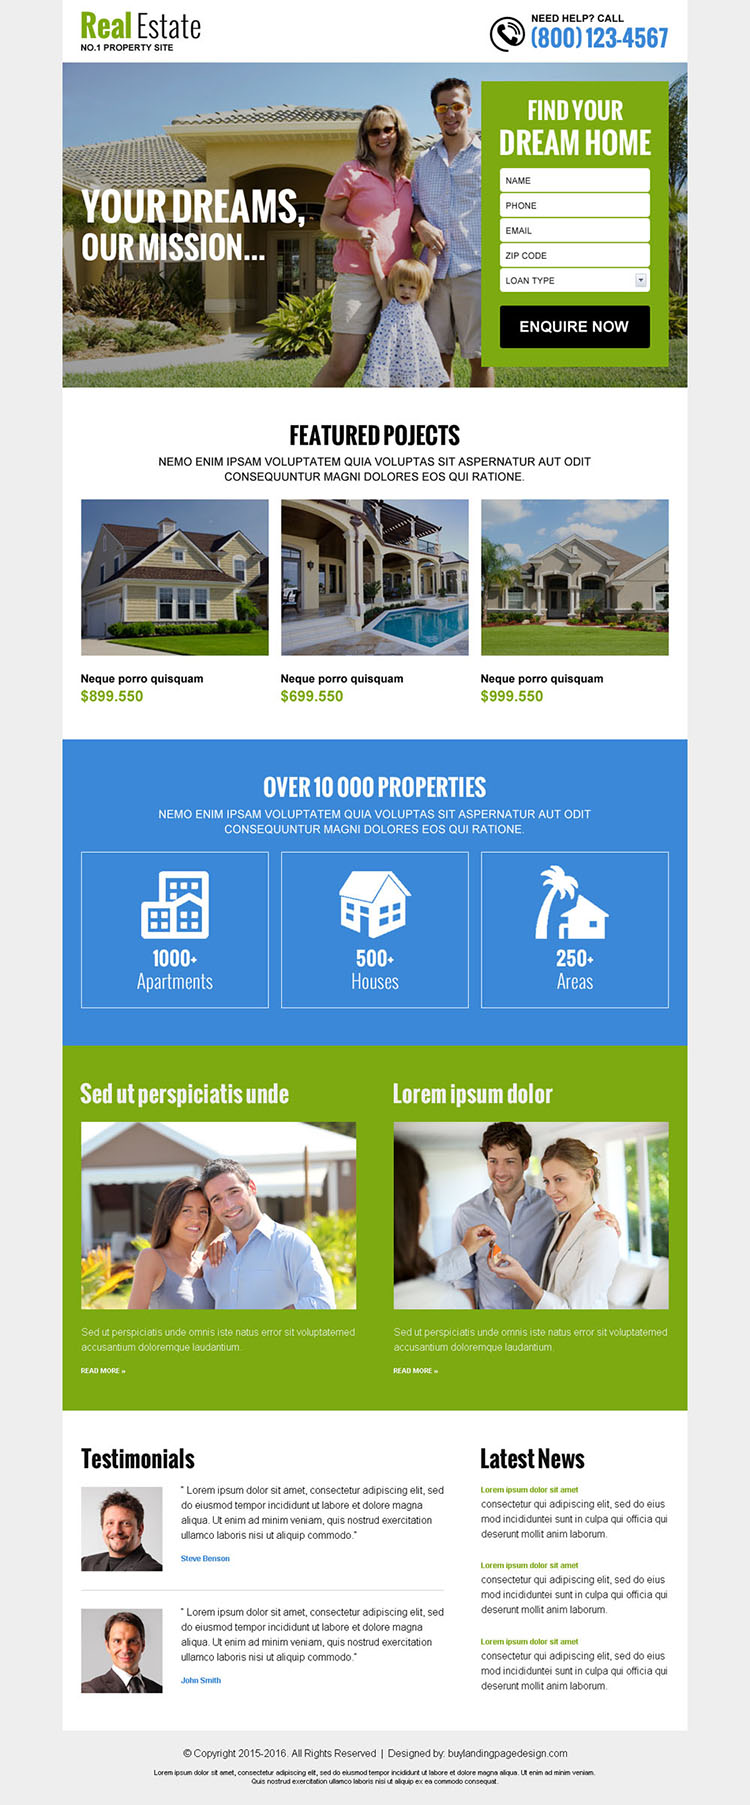 real estate free quote service lead gen landing page